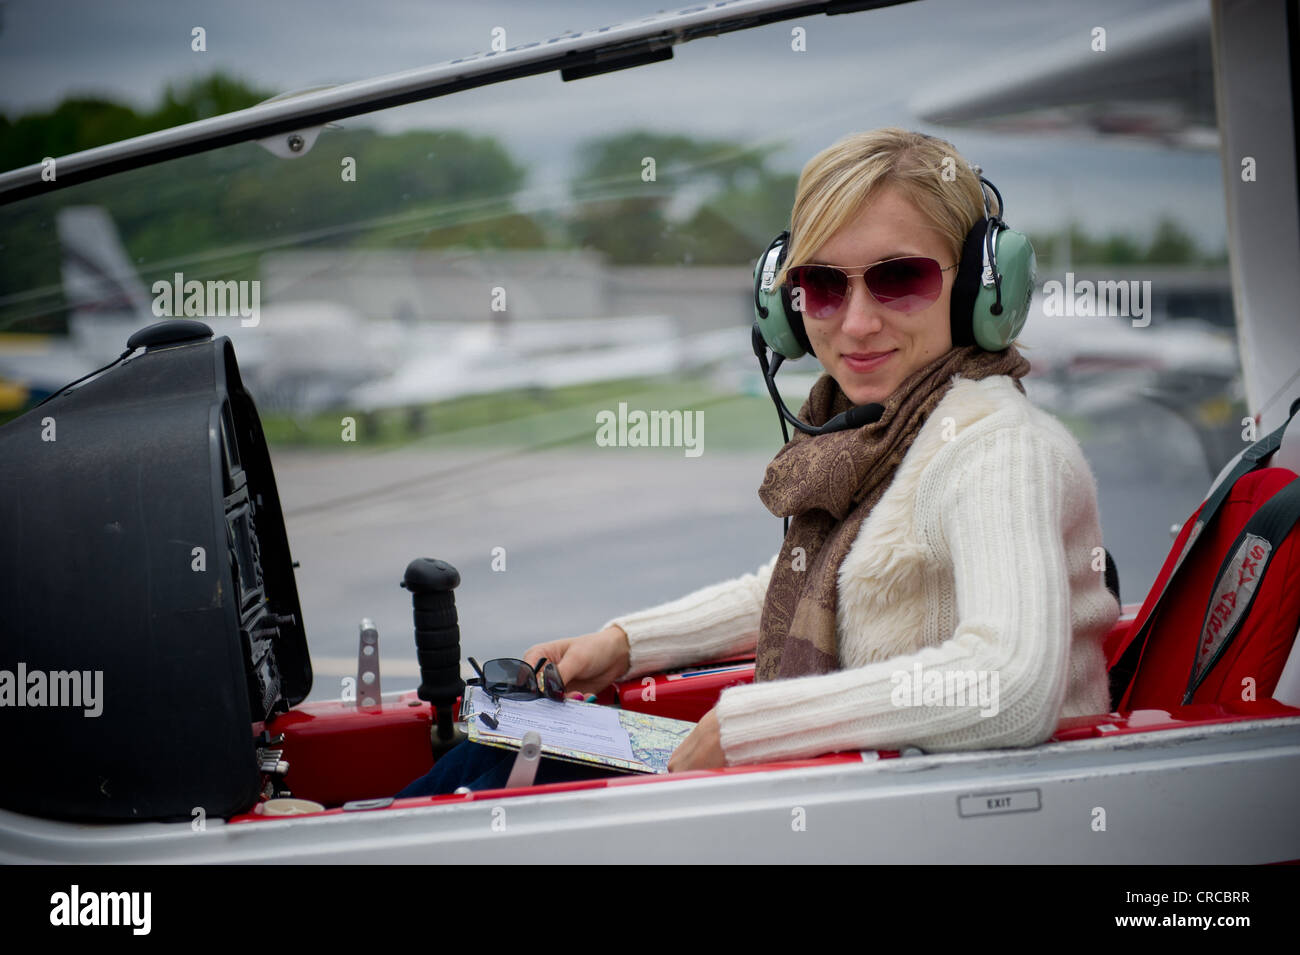 arrow helicopter with Stock Photo Female Pilot In Sky Arrow Light Sport Lsa Aircraft 48830539 on Page emergallery vehicles also Stock Photo Female Pilot In Sky Arrow Light Sport Lsa Aircraft 48830539 in addition Miami Development besides Leopard 2 Mbt together with File Arrowhead device.